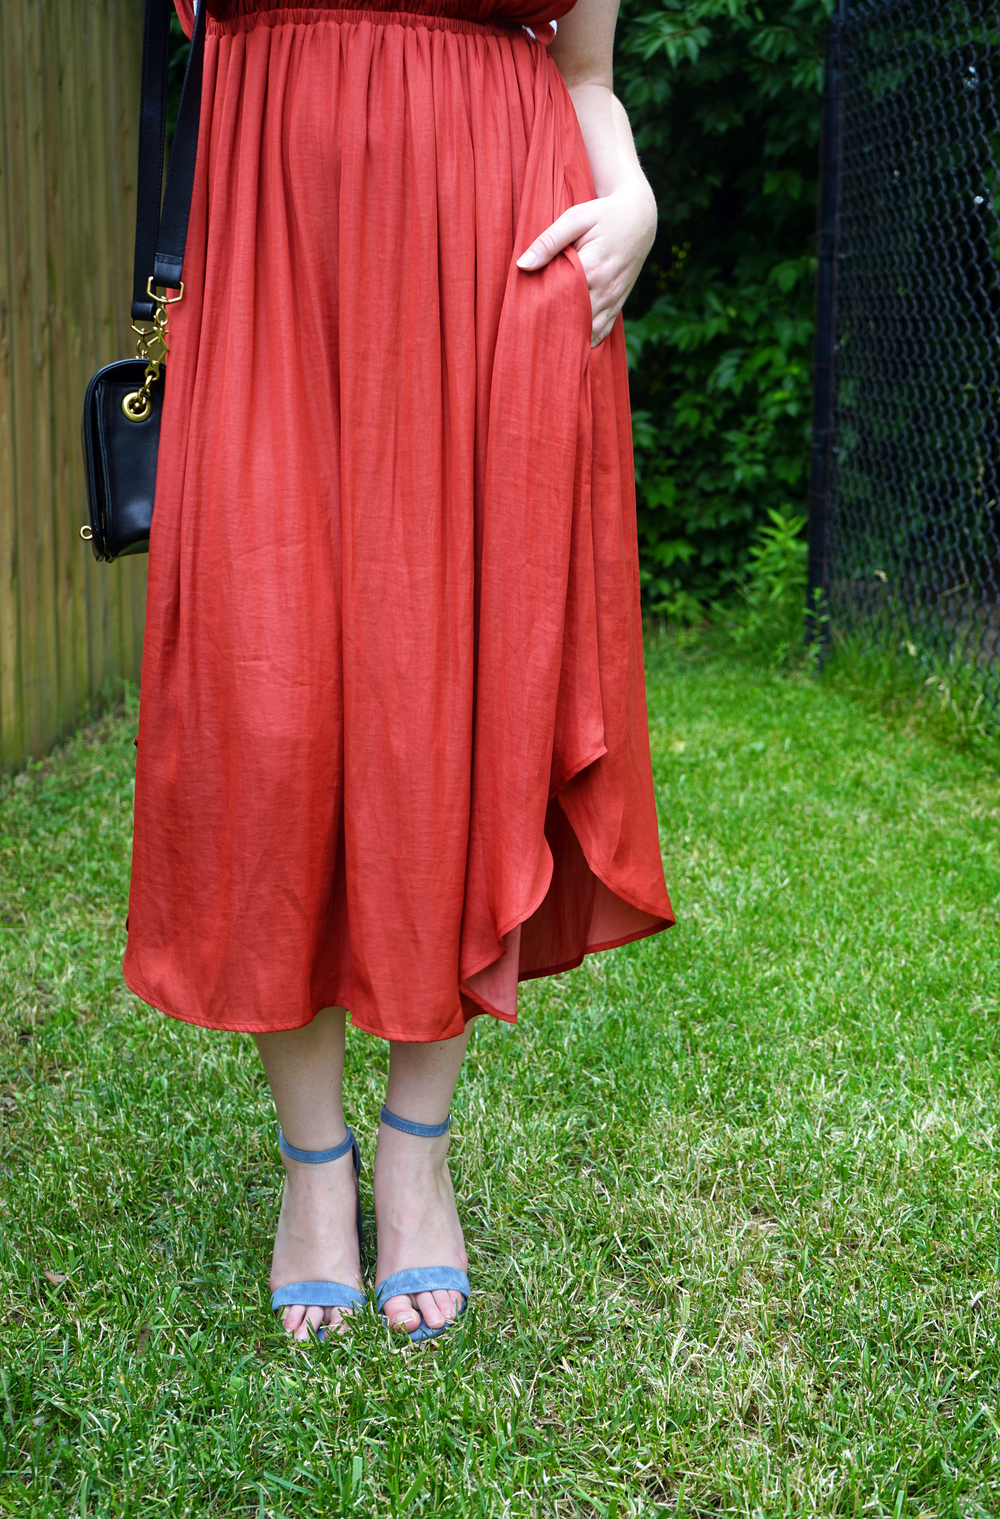 Anthropologie Dolan Left Coast Costa Midi Dress, Steve Madden Carrson Sandals Heels, J Crew crossbody purse - Maggie a la Mode